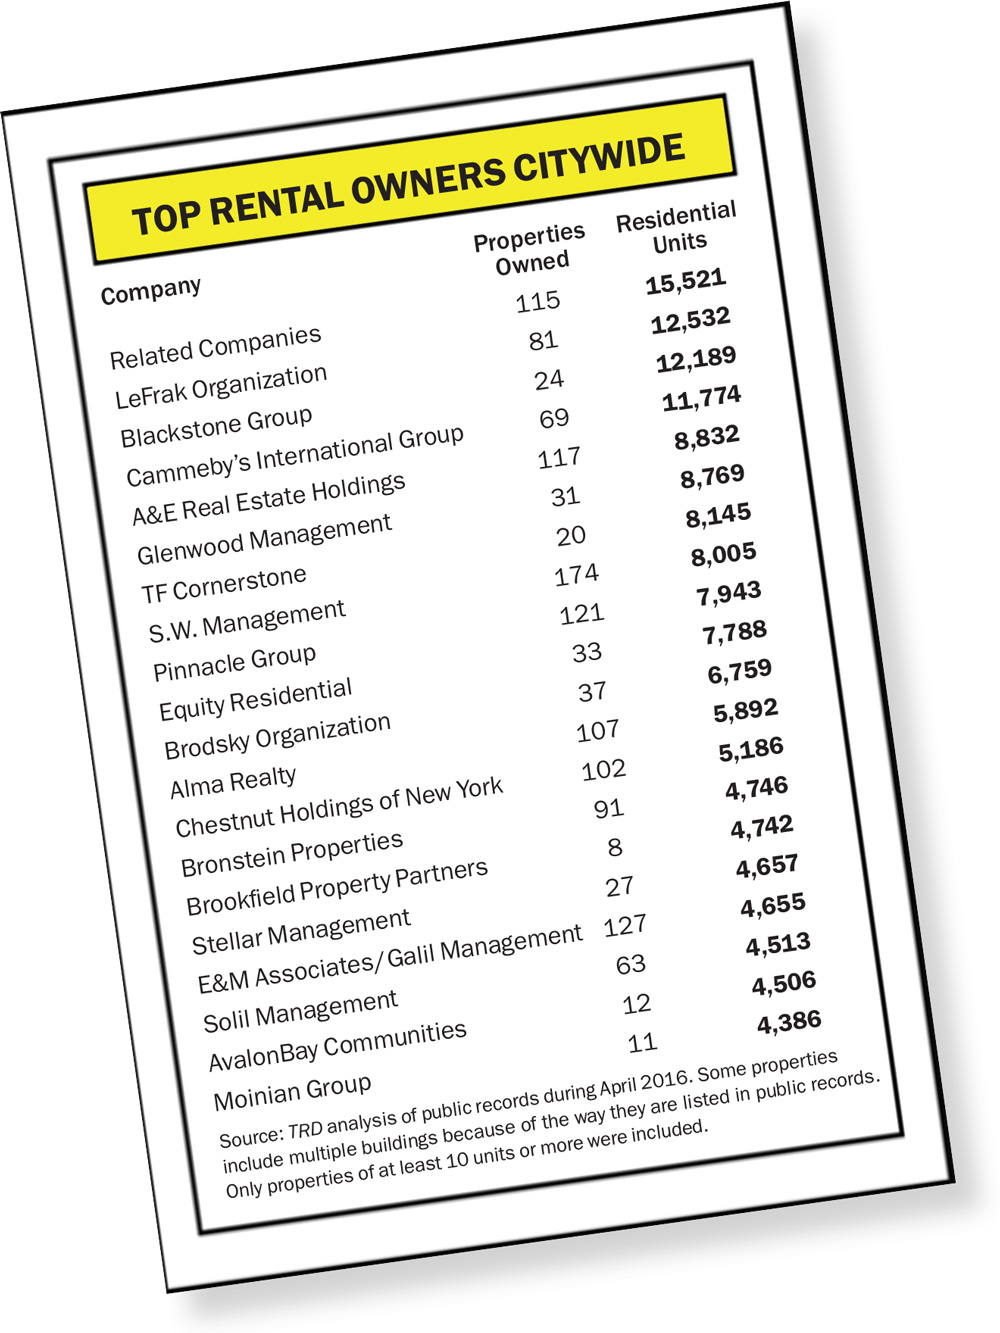 Biggest Landlords In Nyc Related Companies Blackstone